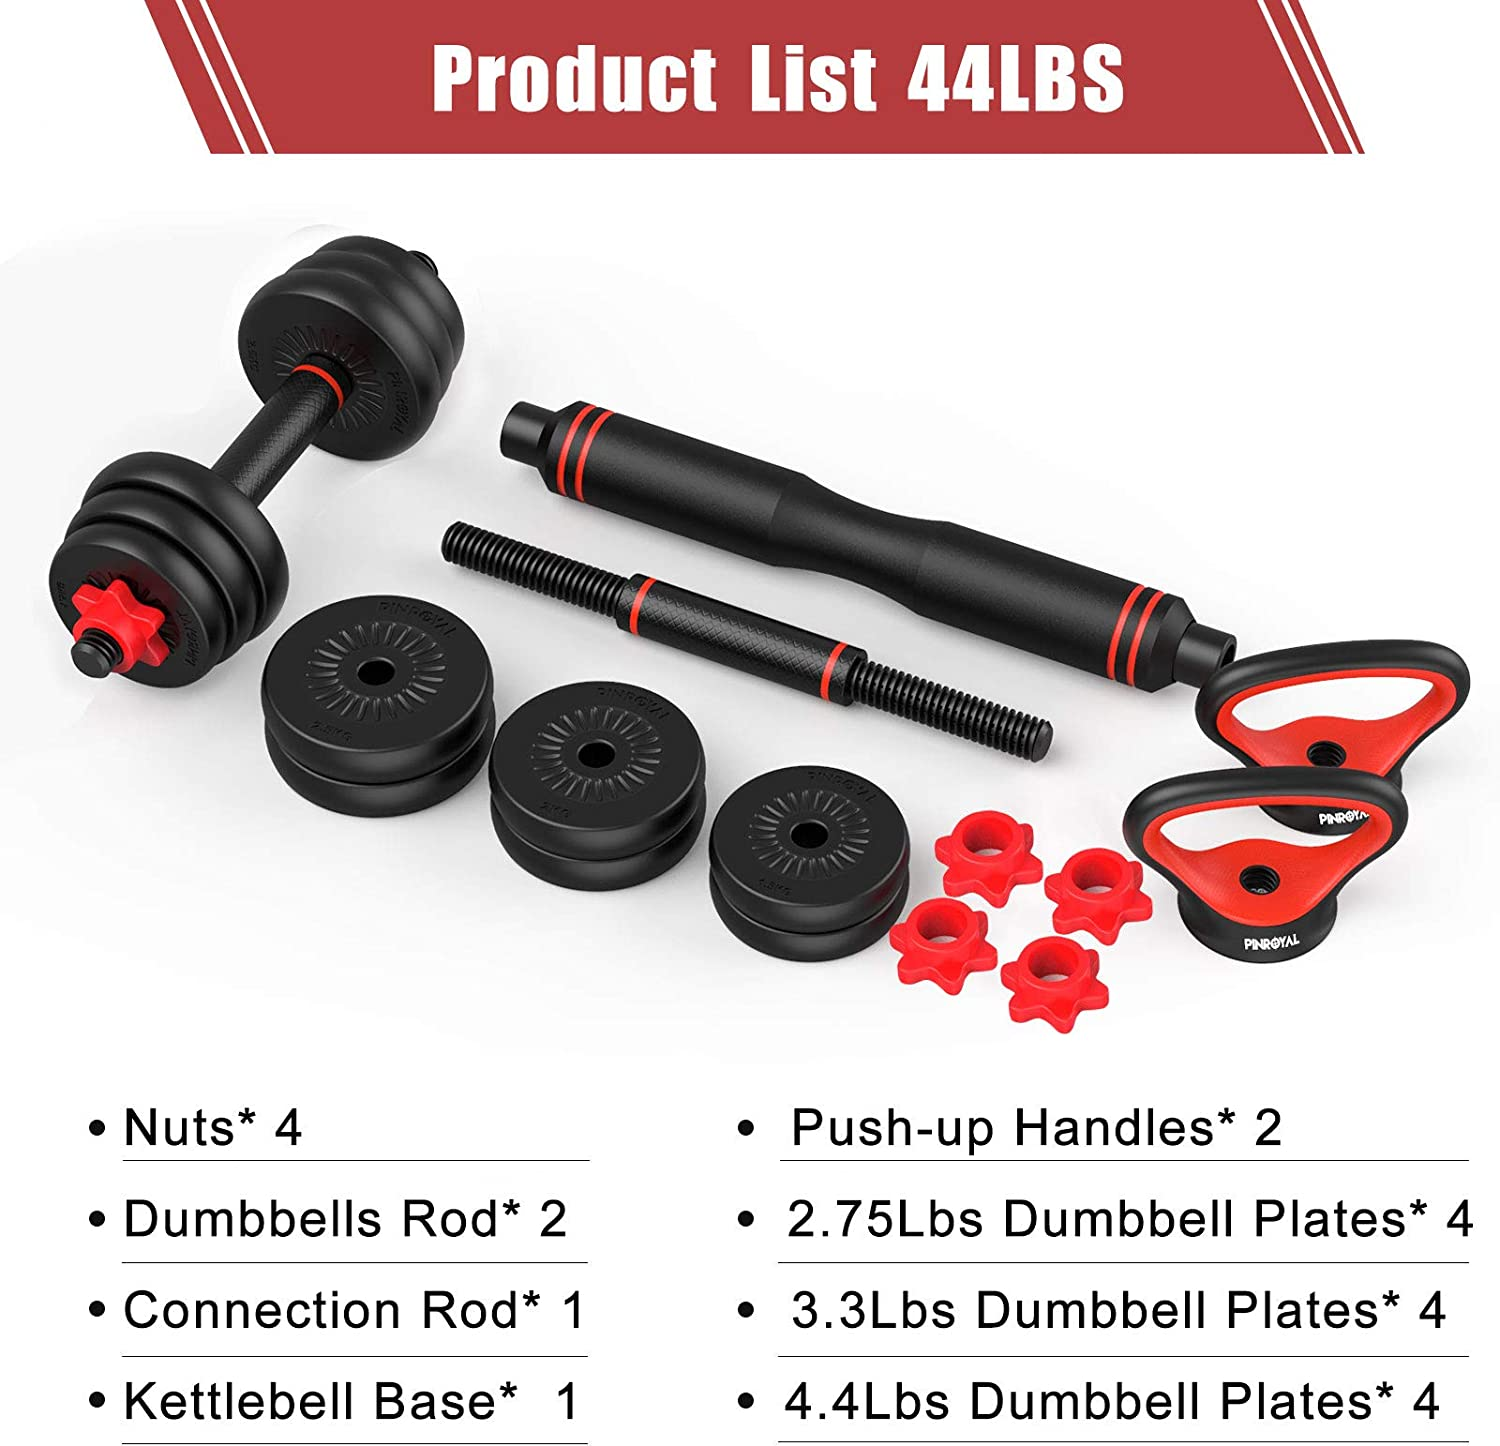 PINROYAL 4 in 1 Adjustable Dumbbell Set Push up Fitness Home Gym for Men Women 44LB//66LB//88LB Free Weights Dumbbells Set with Connecting Rod Used as Barbell Non-slip Handles /& Base for Kettlebells